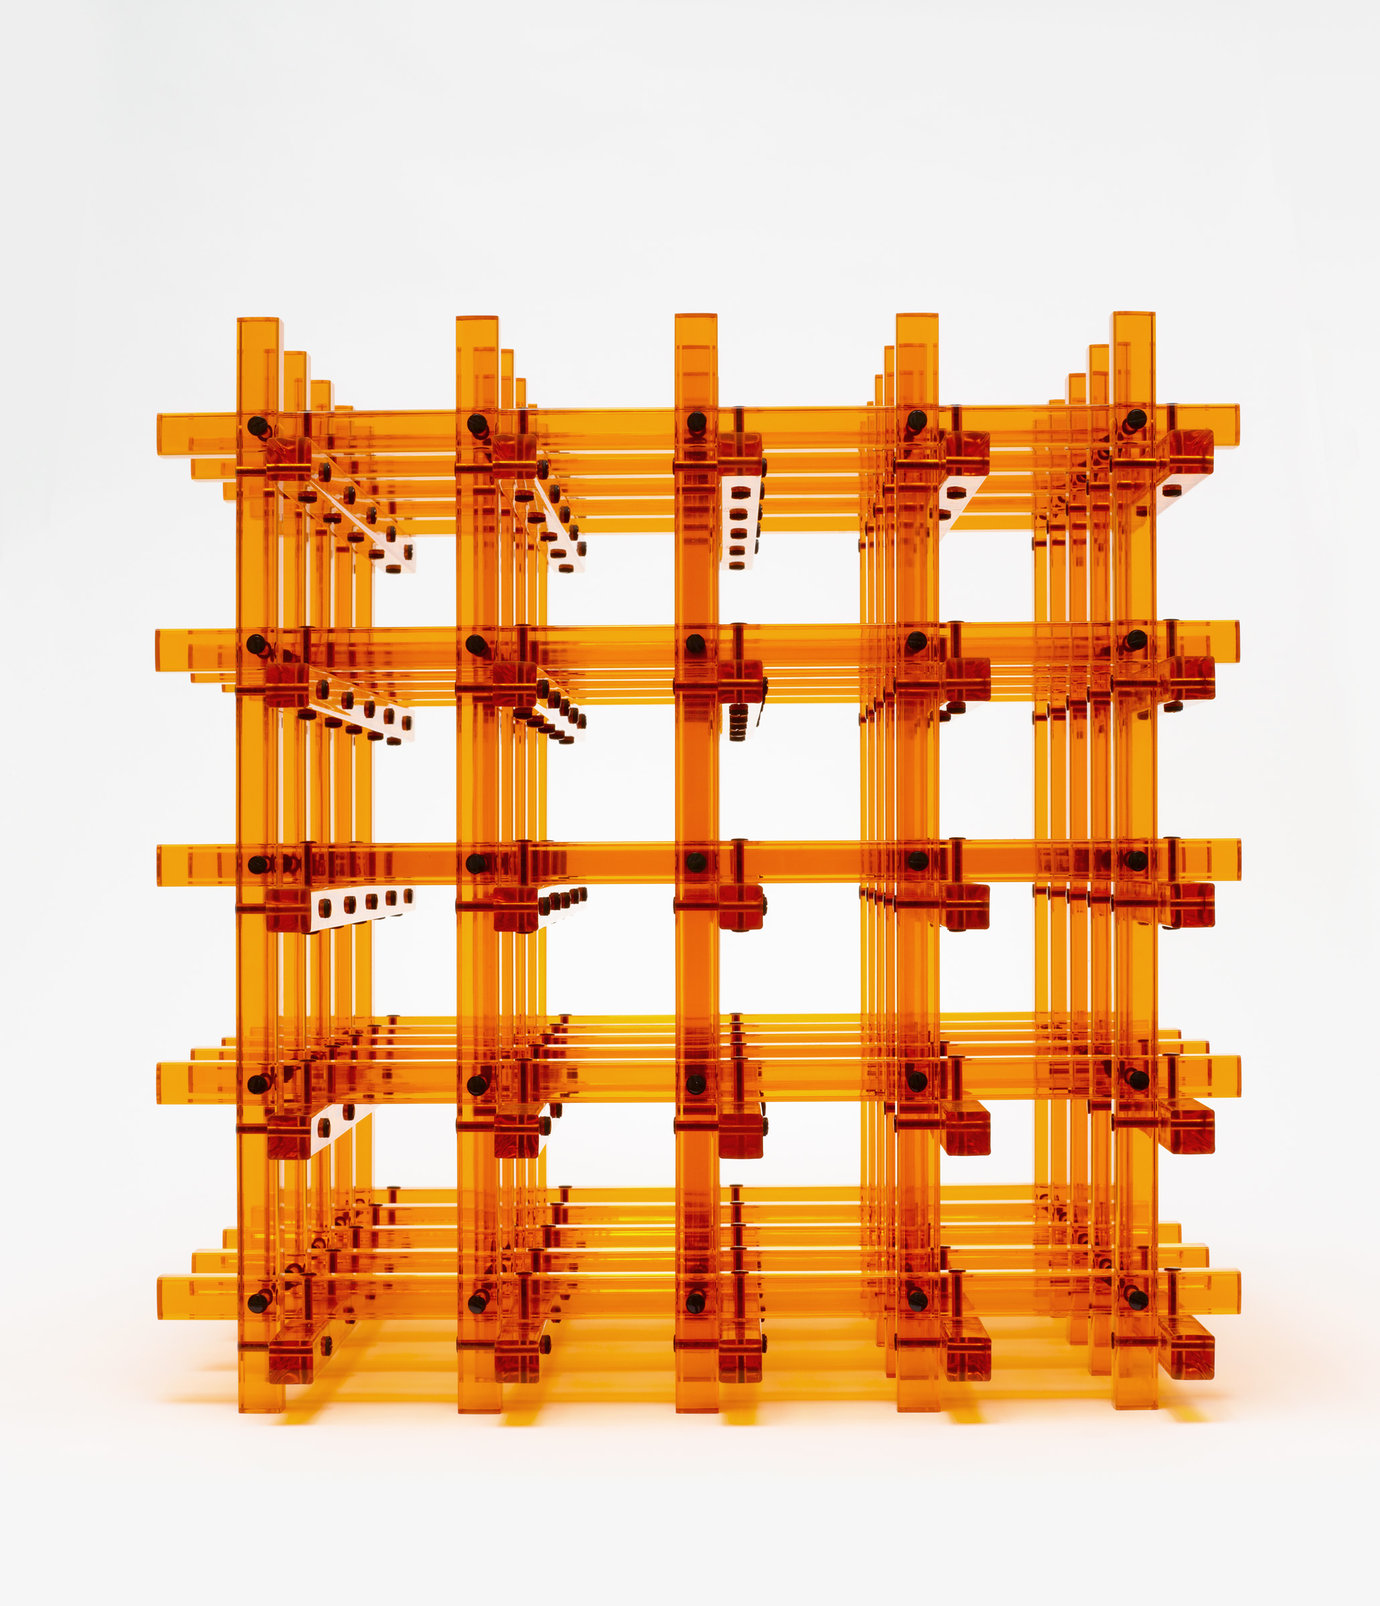 ", 2012. acrylic orange rods, 25-5/16"" x 25-5/16"" x 25-5/16"" (64.3 cm x 64.3 cm x 64.3 cm)."